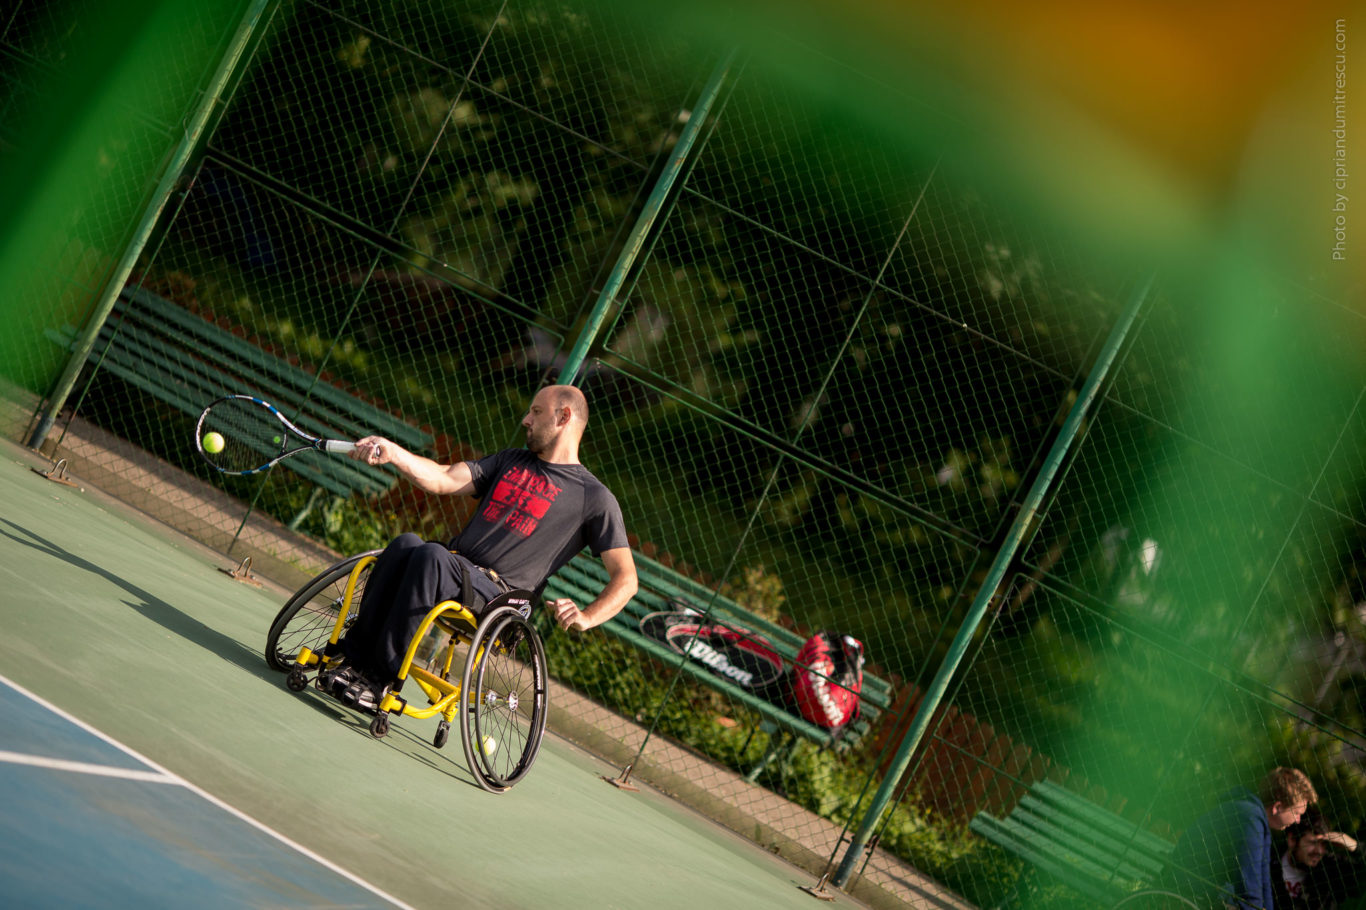 003-Bucharest-Open-Wheelchair-2016-Day-One-Photographer-Ciprian-Dumitrescu